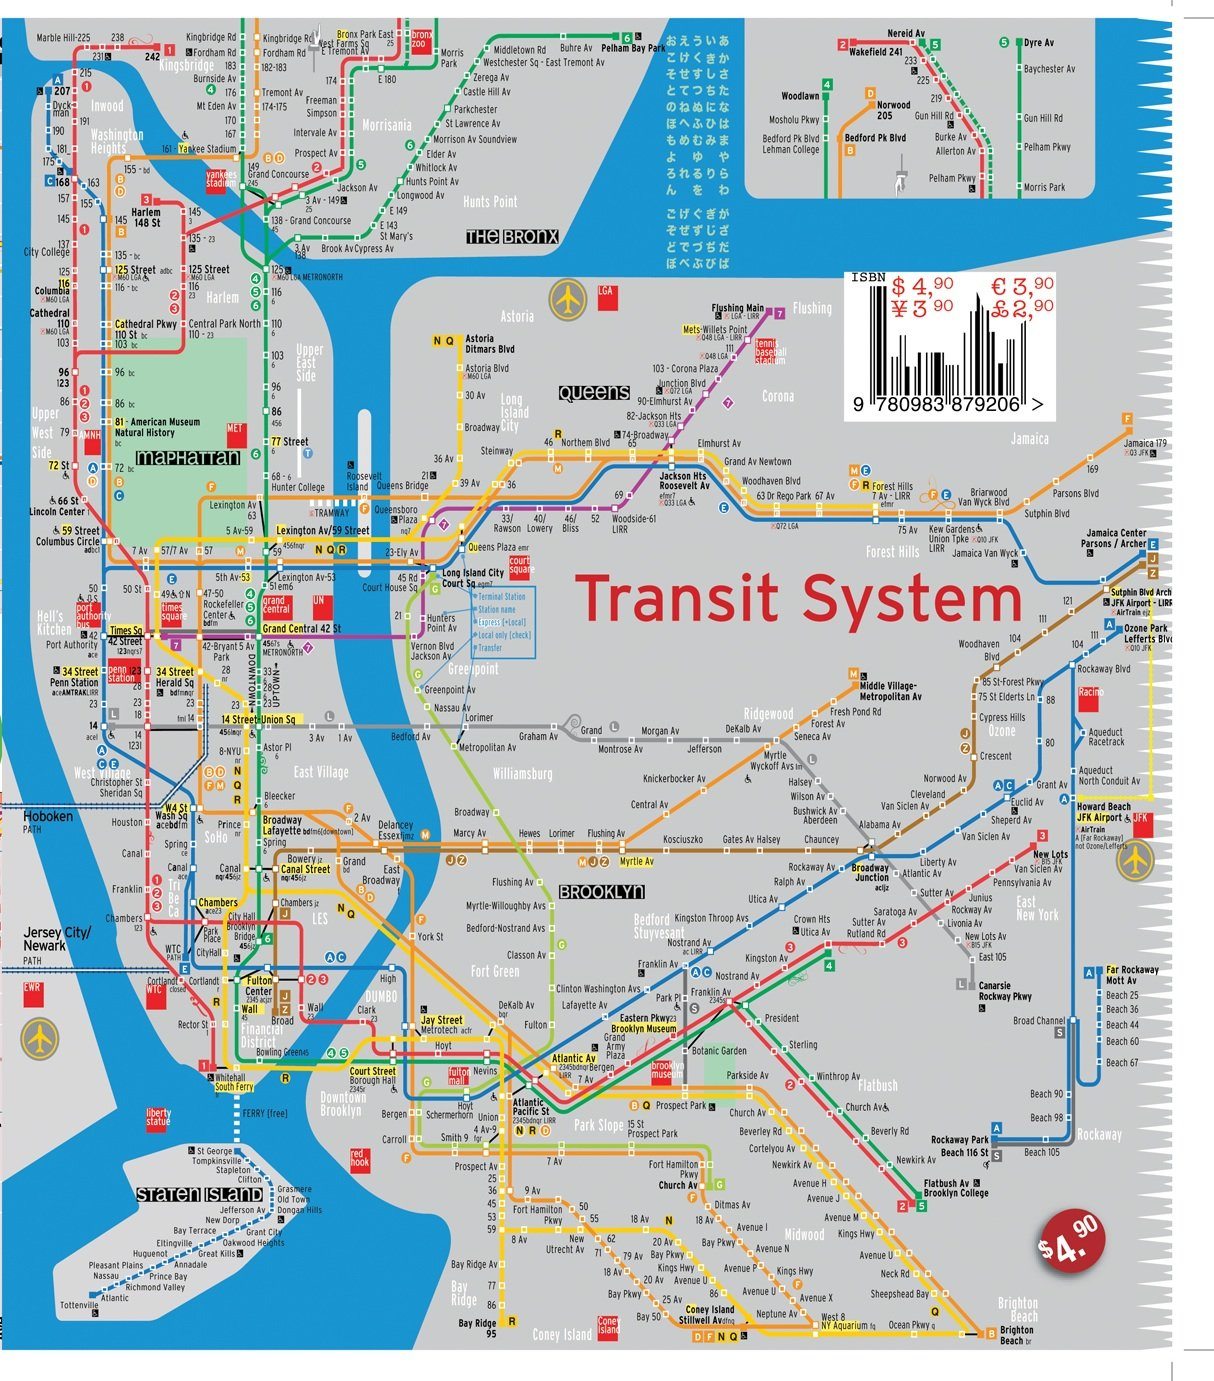 terramaps nyc manhattan street and subway map waterproof pocket alberto michieli 9780983879220 amazoncom books